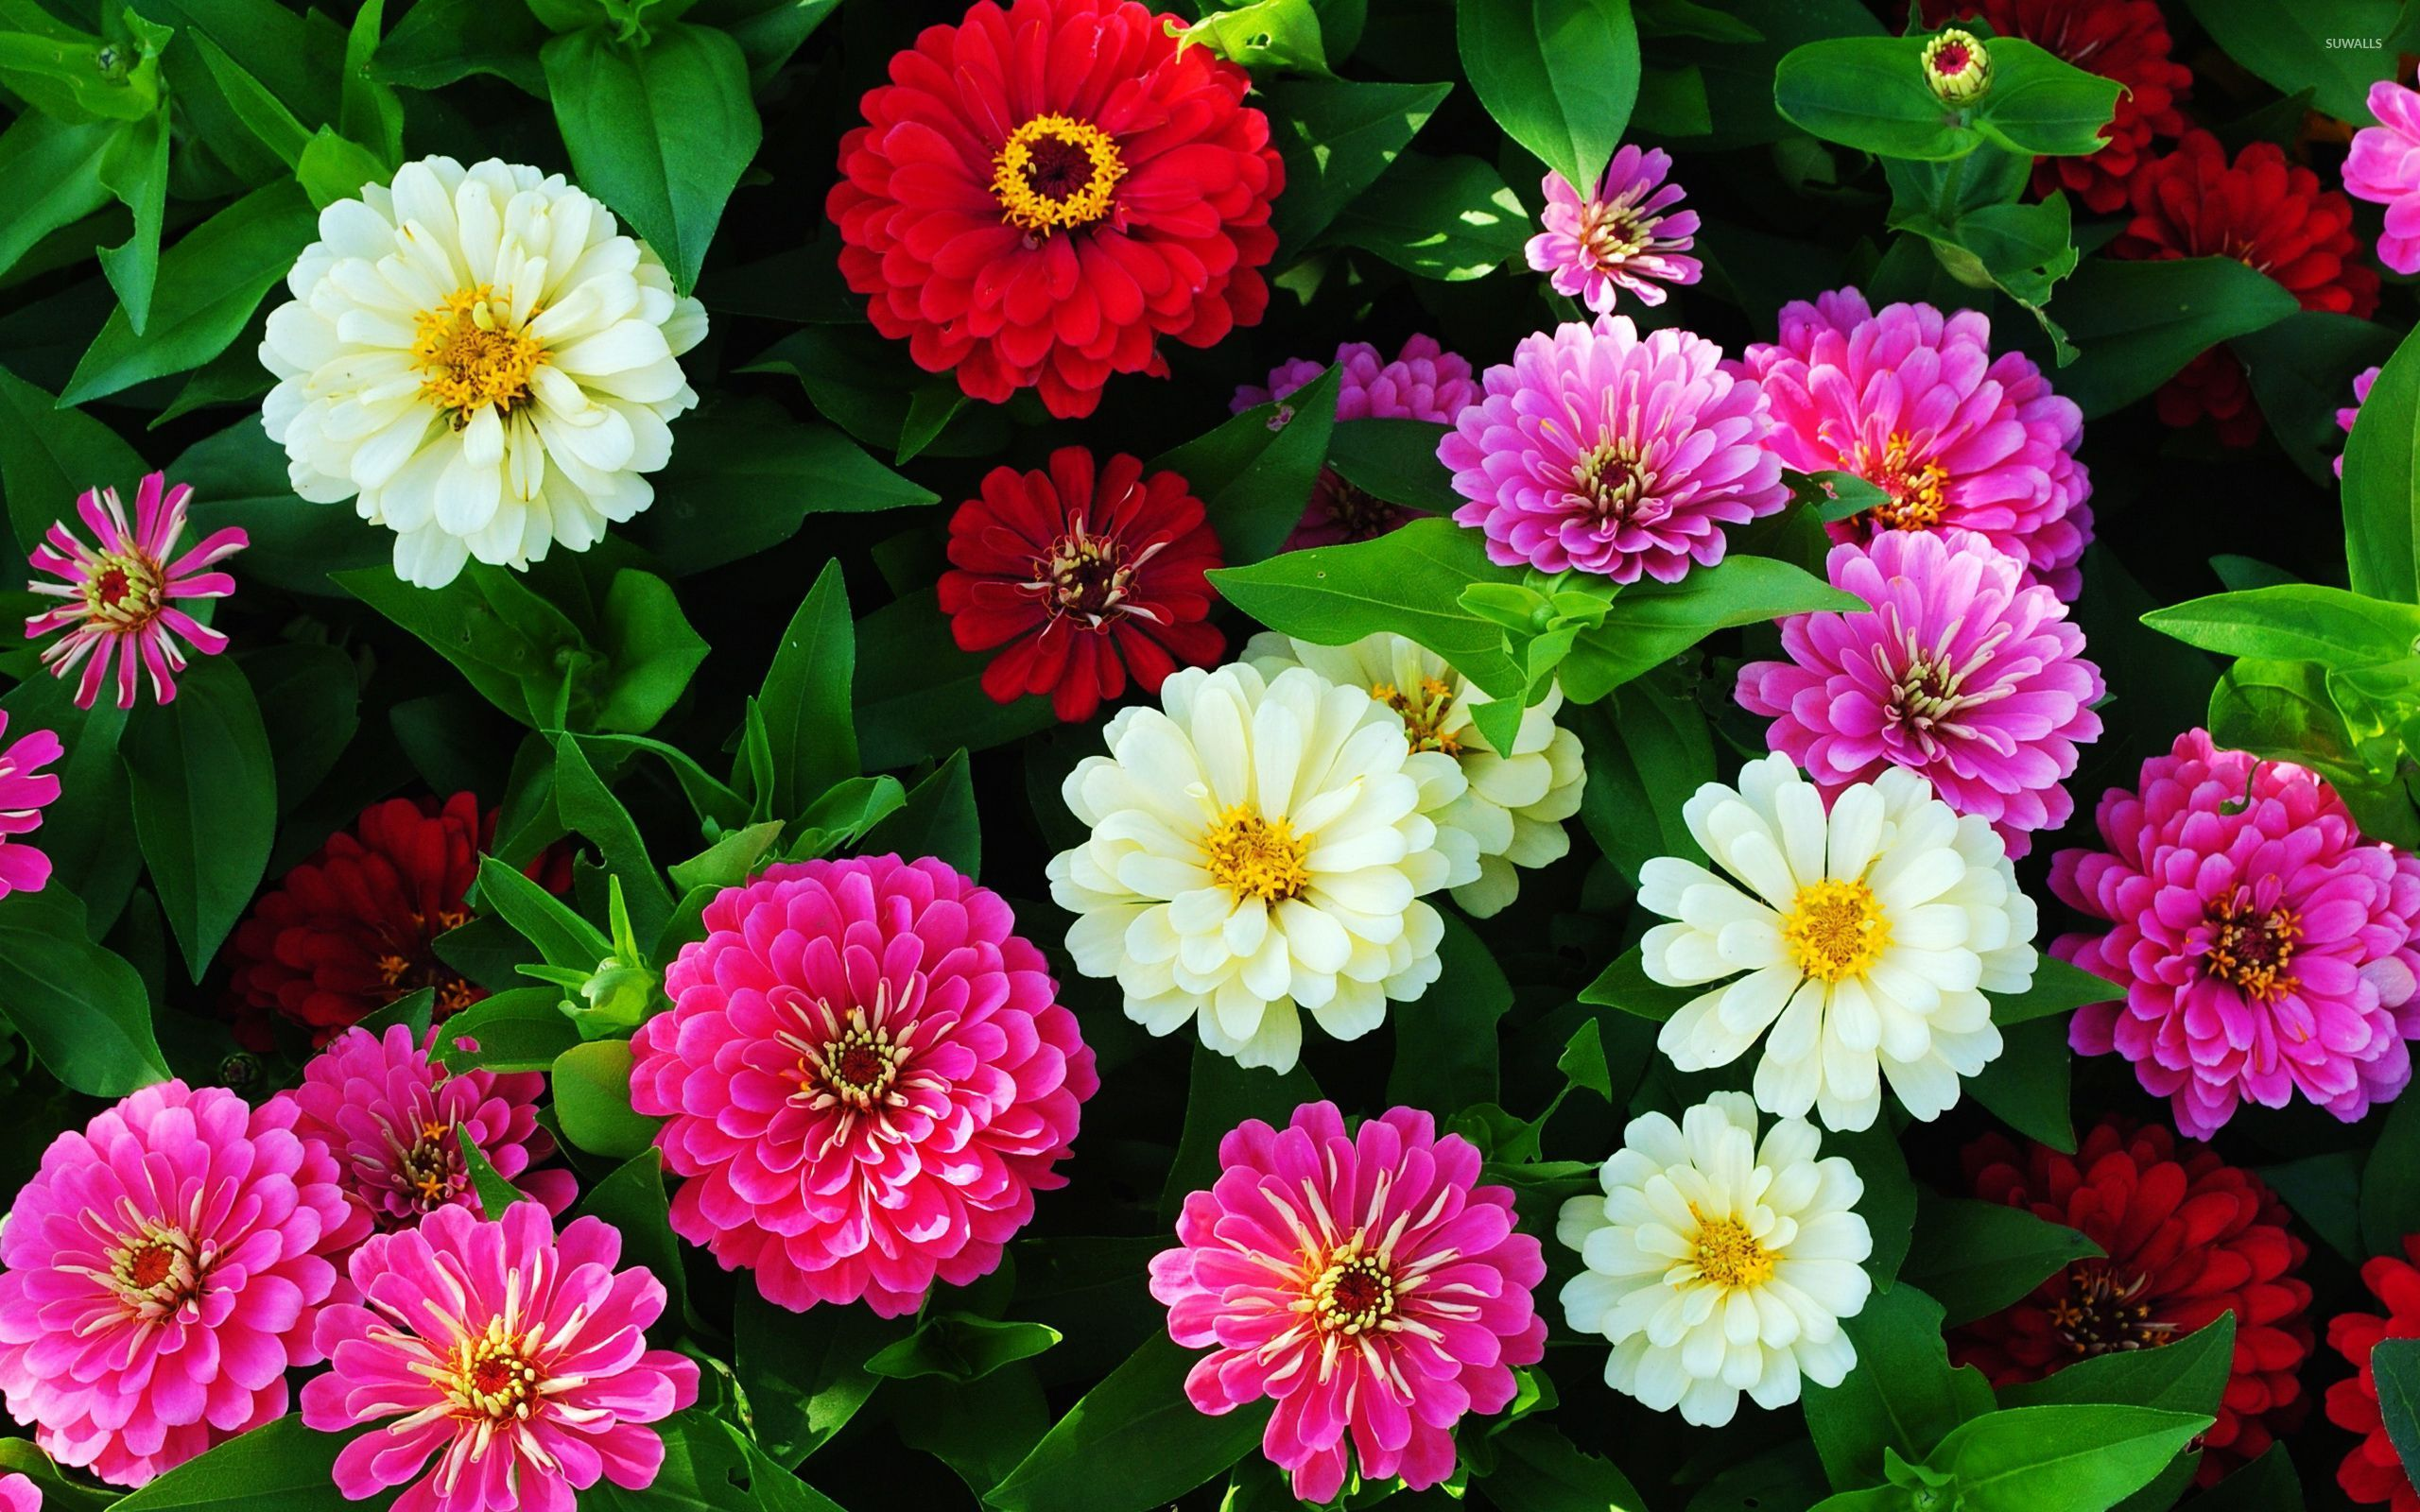 Fondos Flores Hd: Colorful Zinnias Wallpaper